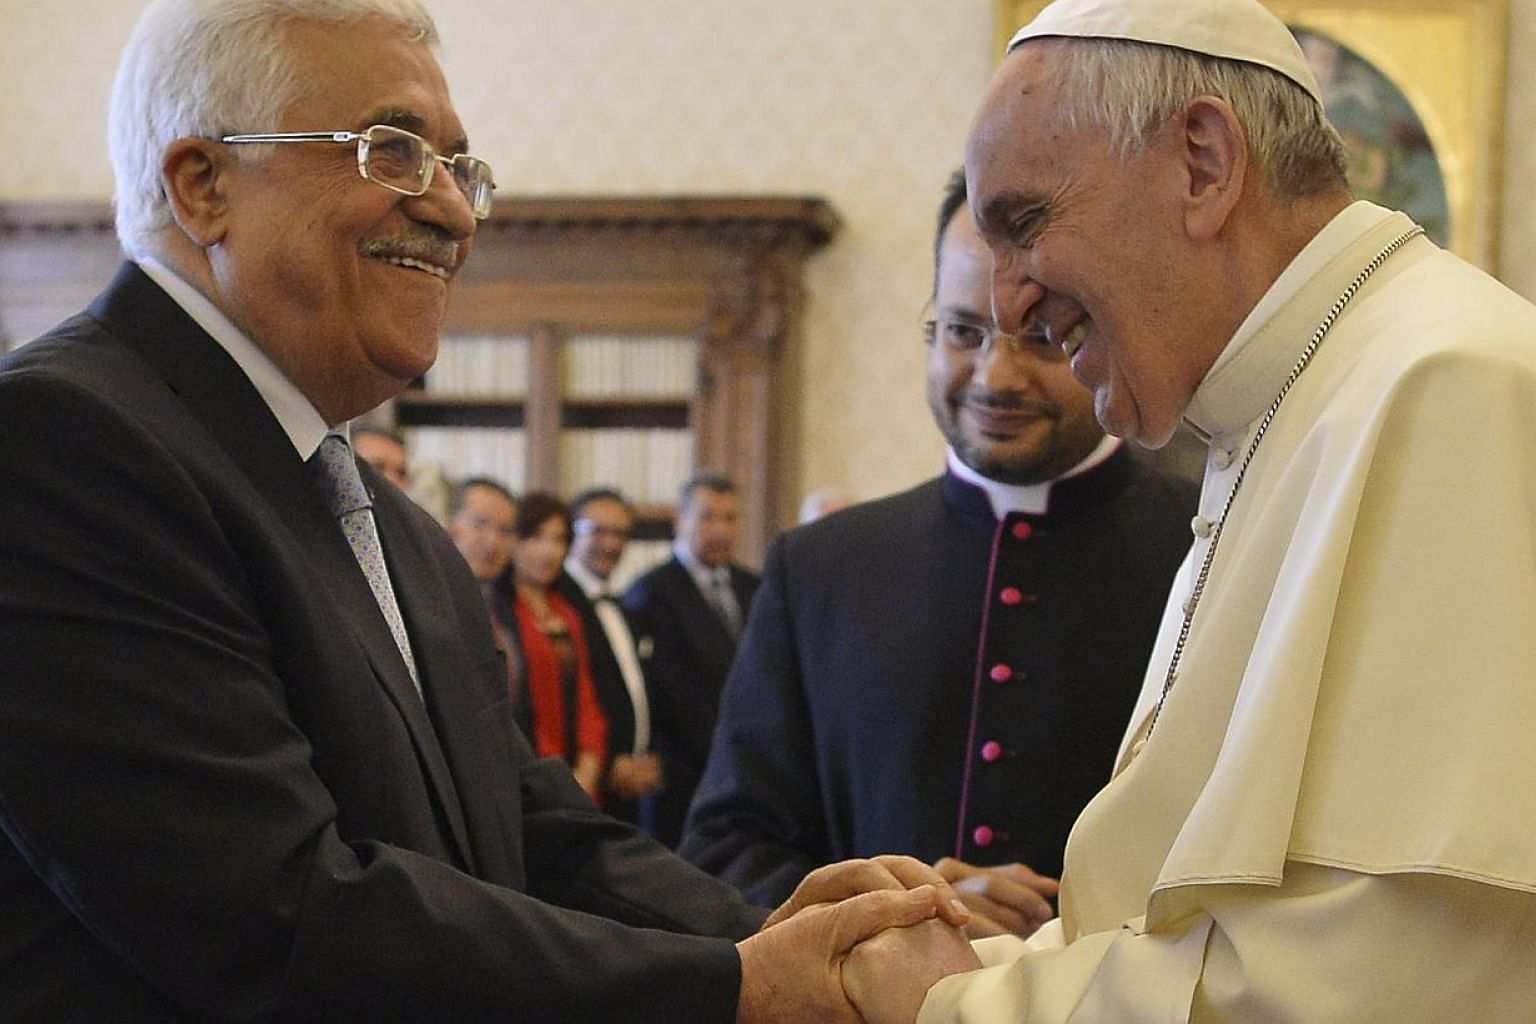 Pope Francis (right) shakes hands with Palestinian President Mahmoud Abbas during a private audience at the Vatican City, May 16, 2015. -- PHOTO: REUTERS